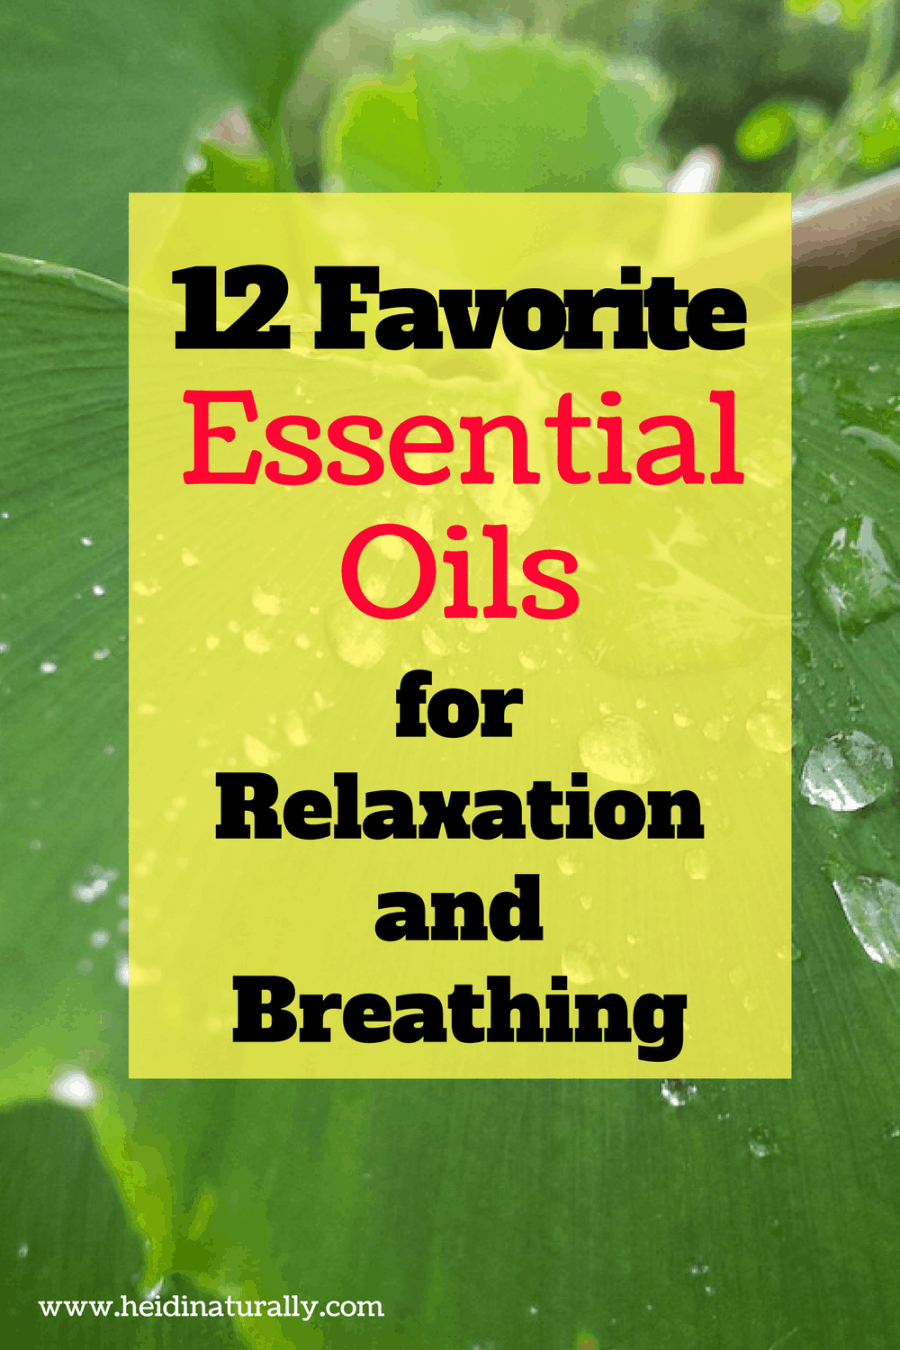 relaxation and breathing https://heidinaturally.com/2018/01/01/favorite-essential-oils-diffuse-relaxation-breathing/